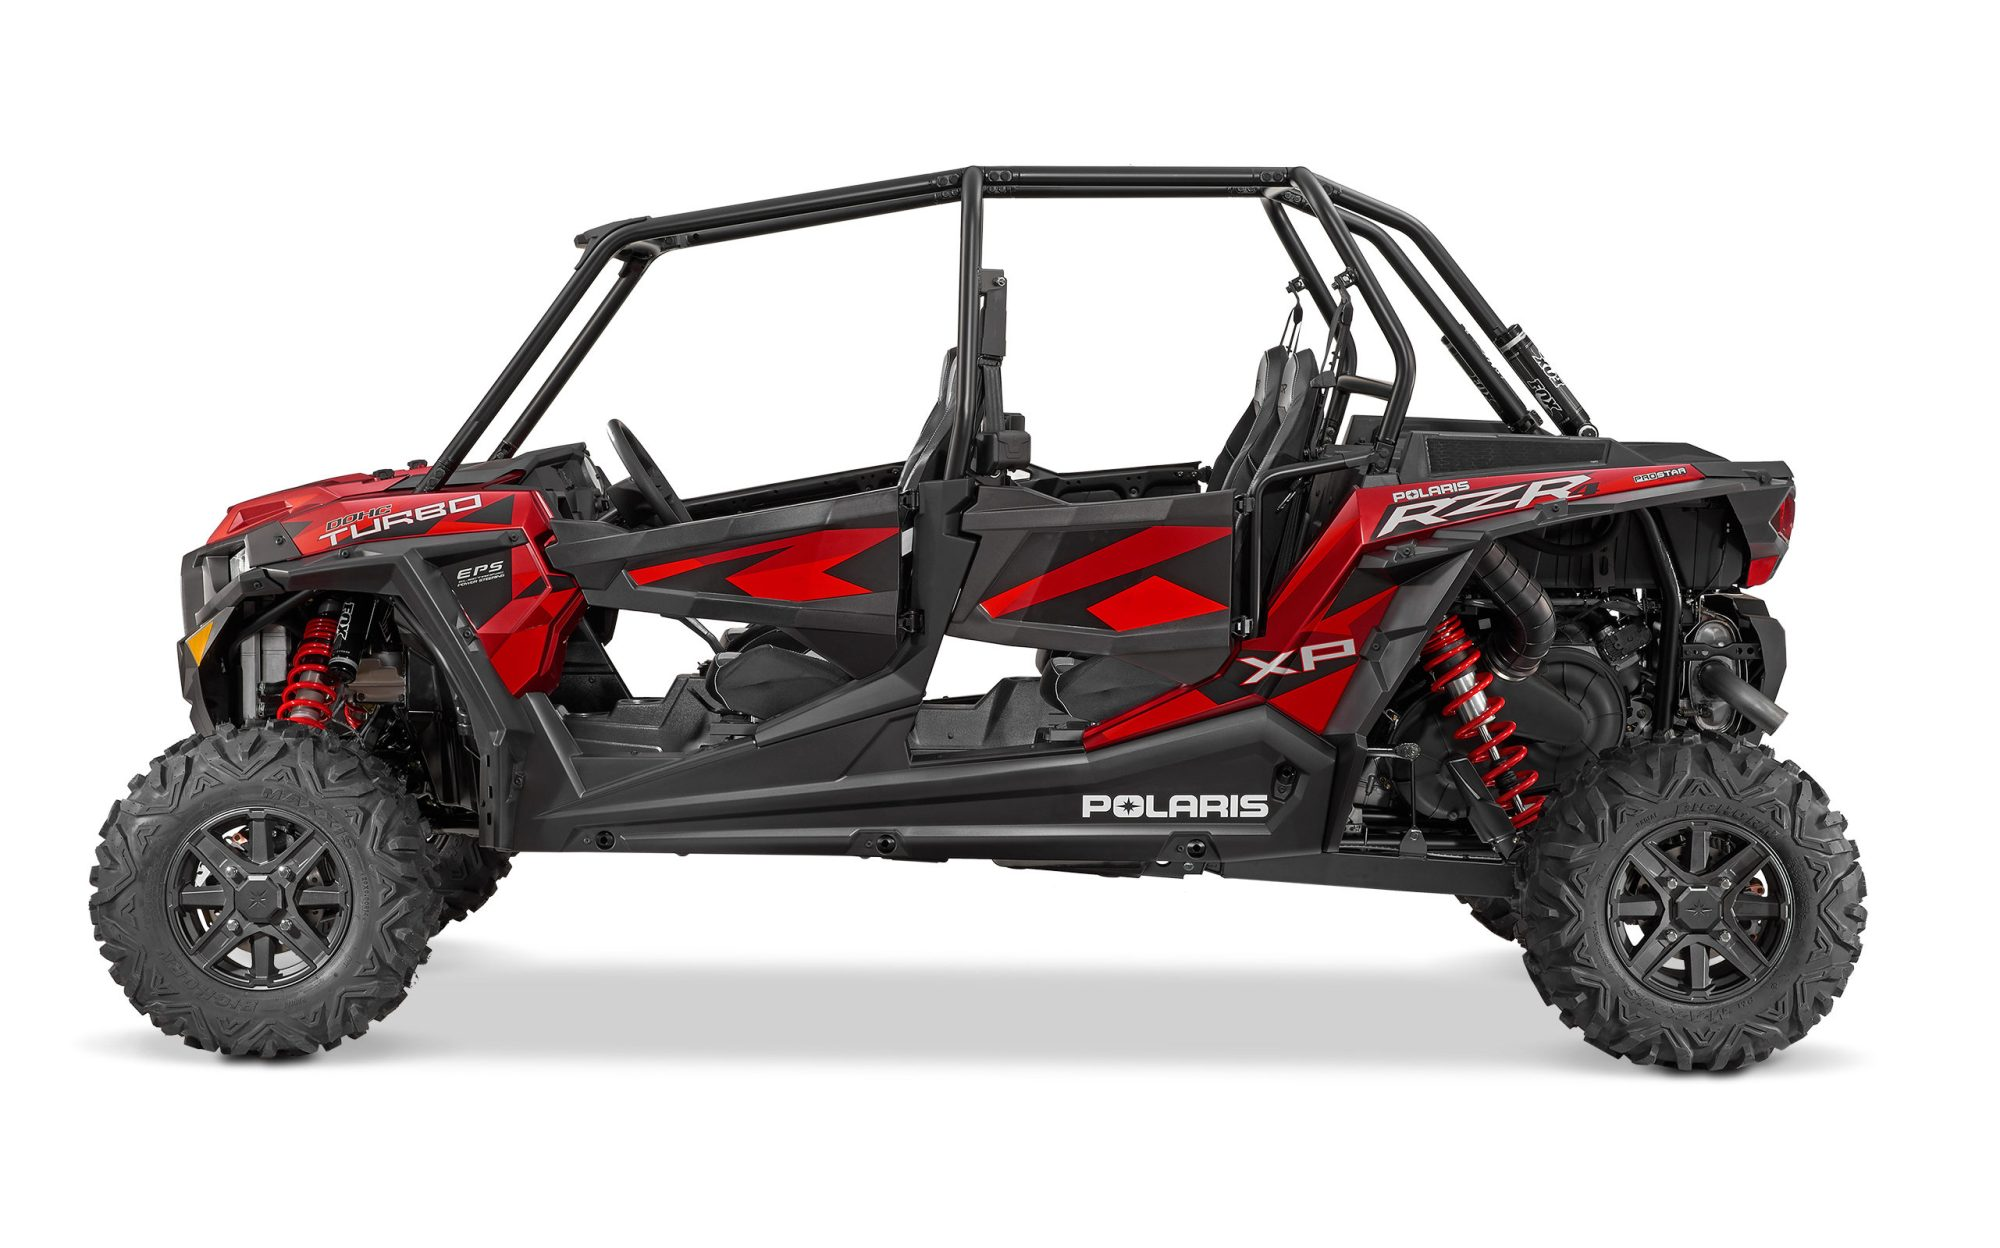 hight resolution of  rzr 570 wiring diagram atv recalls 2016 rzr xp 4 turbo cpsc atv recalls polaris 570 2017 atv at cita asia 2017 polaris 570